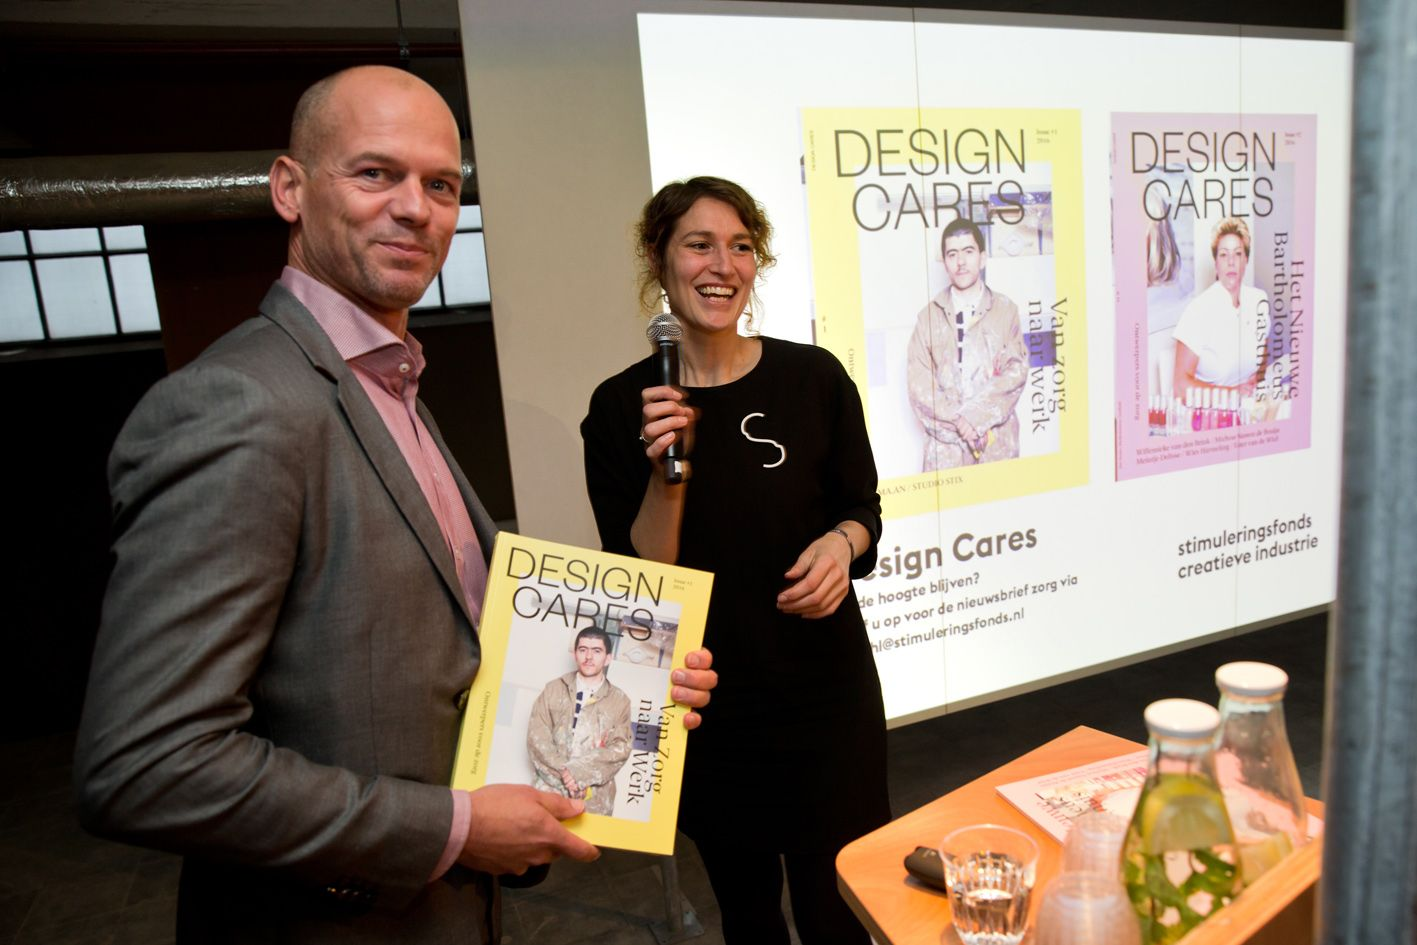 Design Cares dutch design week 2016